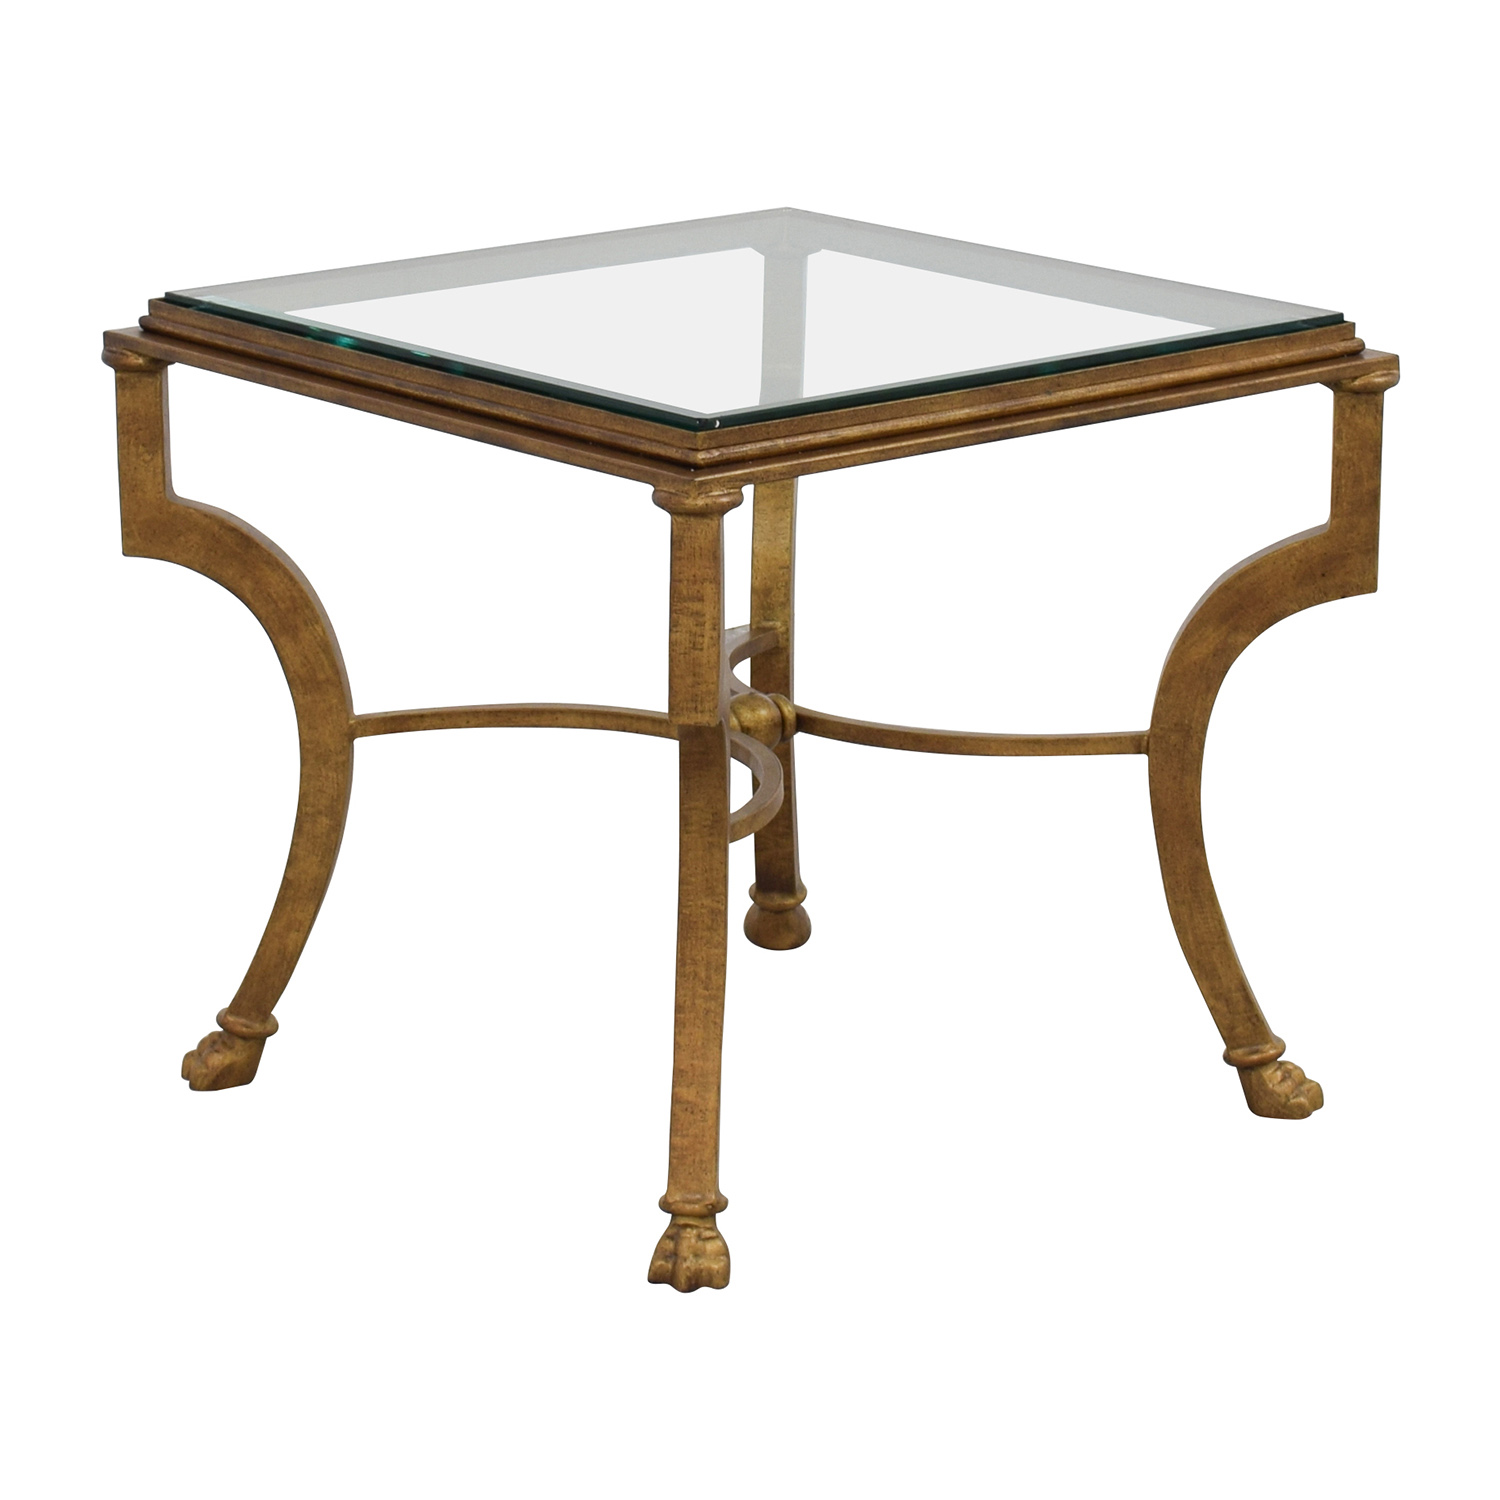 Square Glass End Tables 69 Off Square Antique Gold Side Table With Glass Top